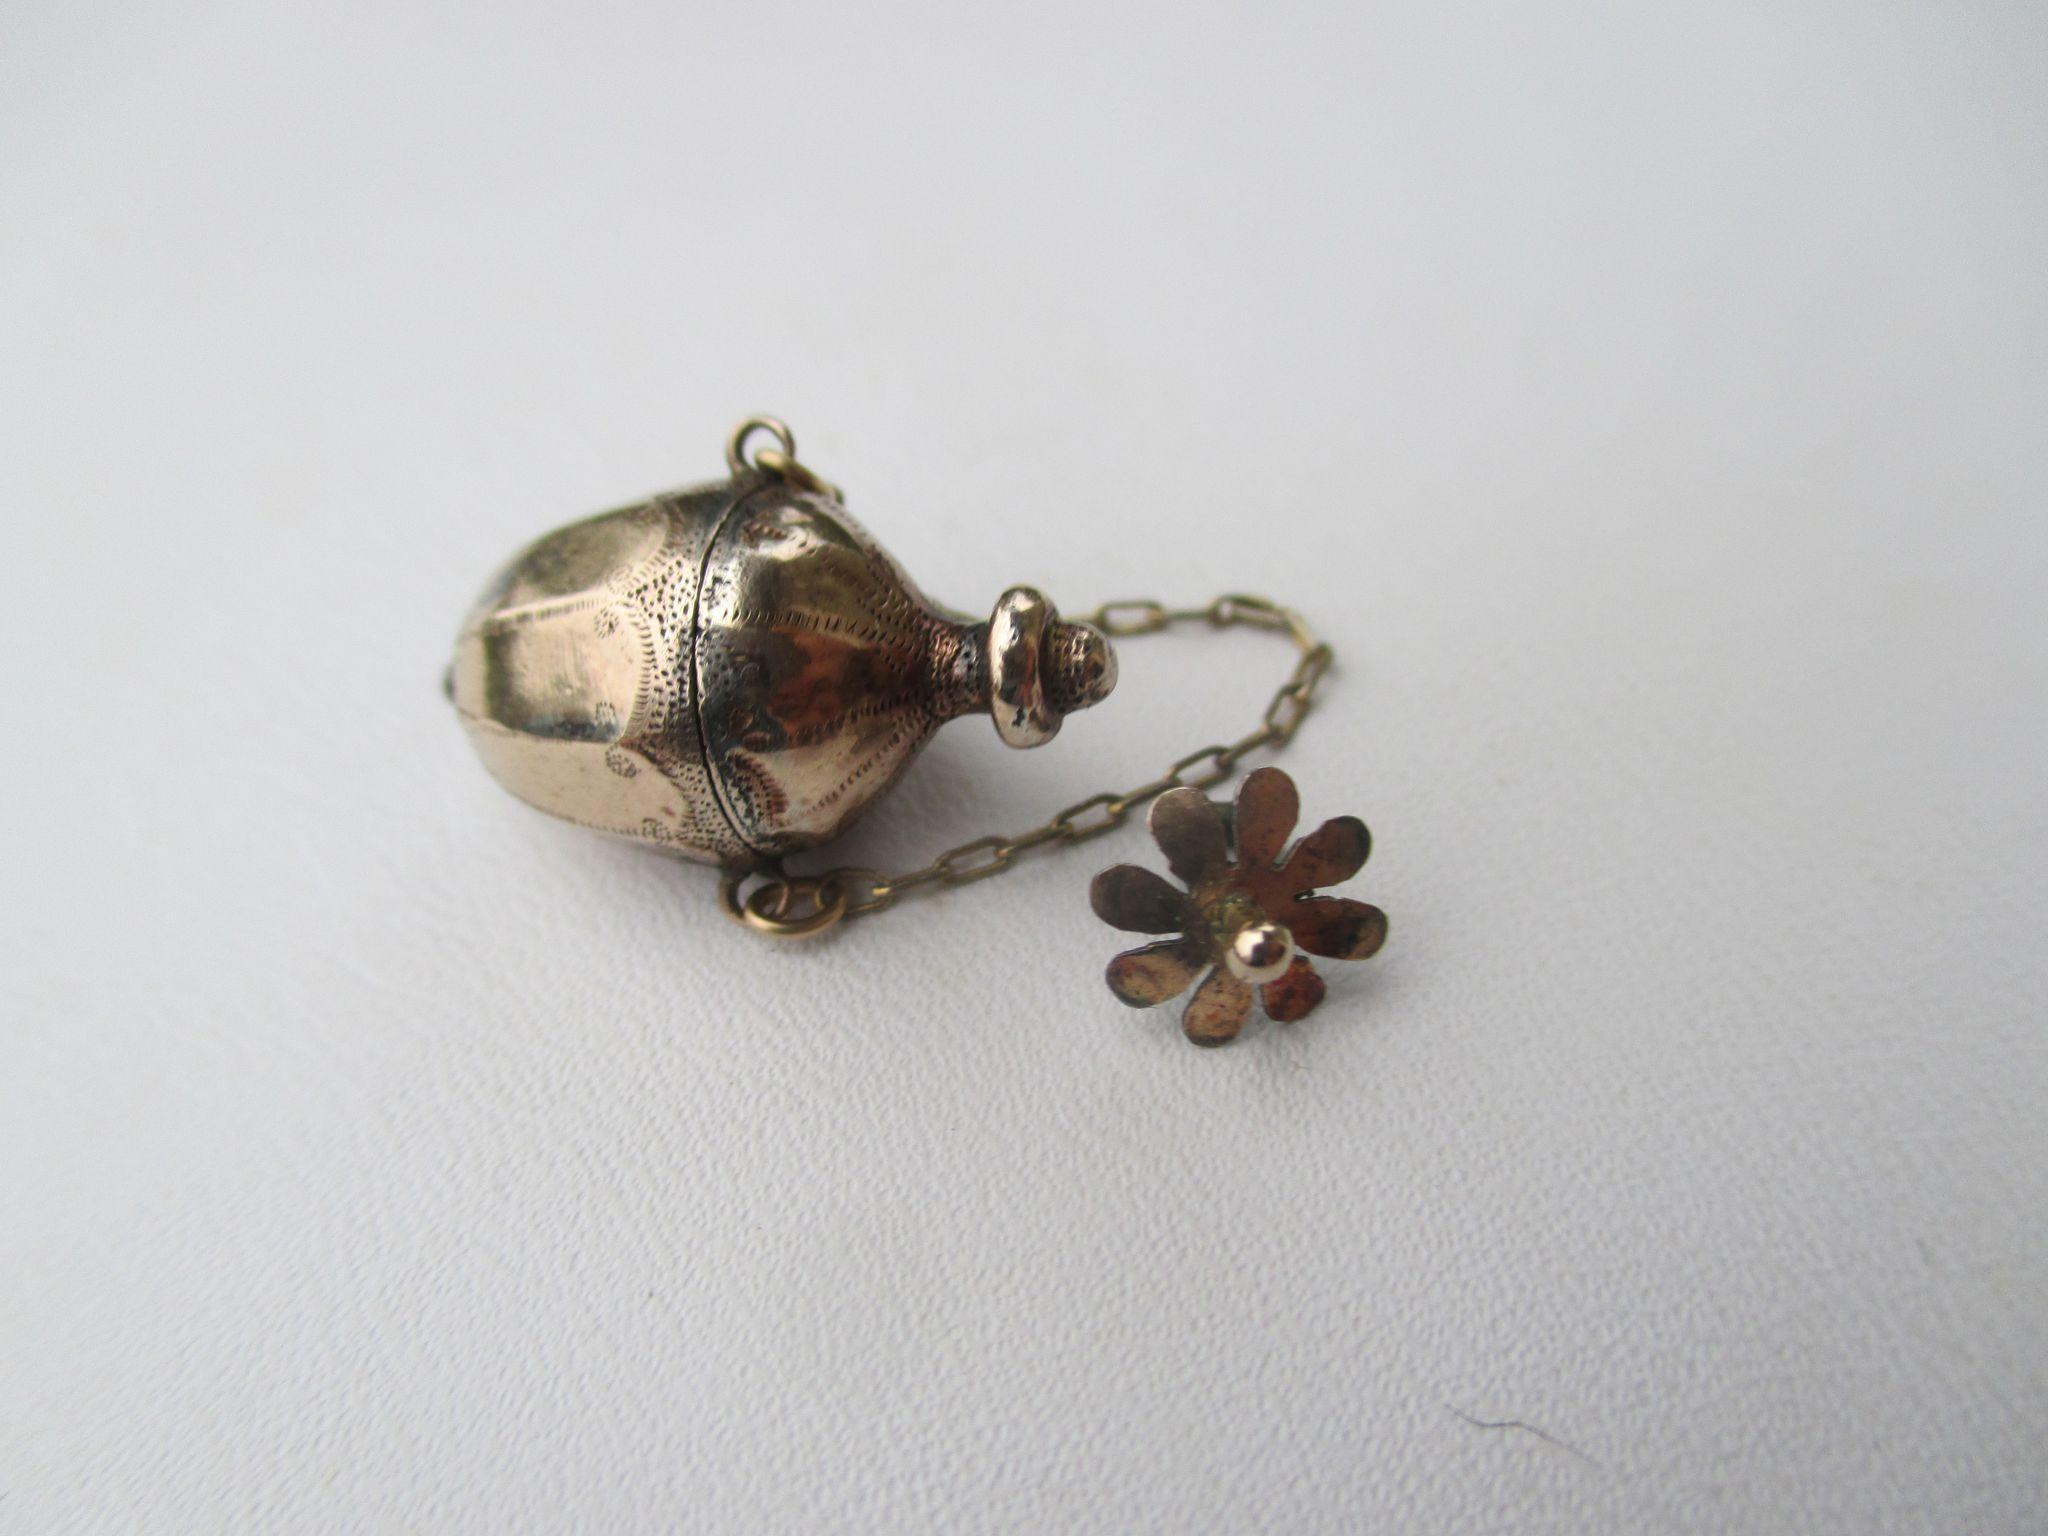 Shop Special! Antique Miniature Child's 15K Gold Perfume Vinaigrette Pendant / Chatelaine ~ Georgian Period